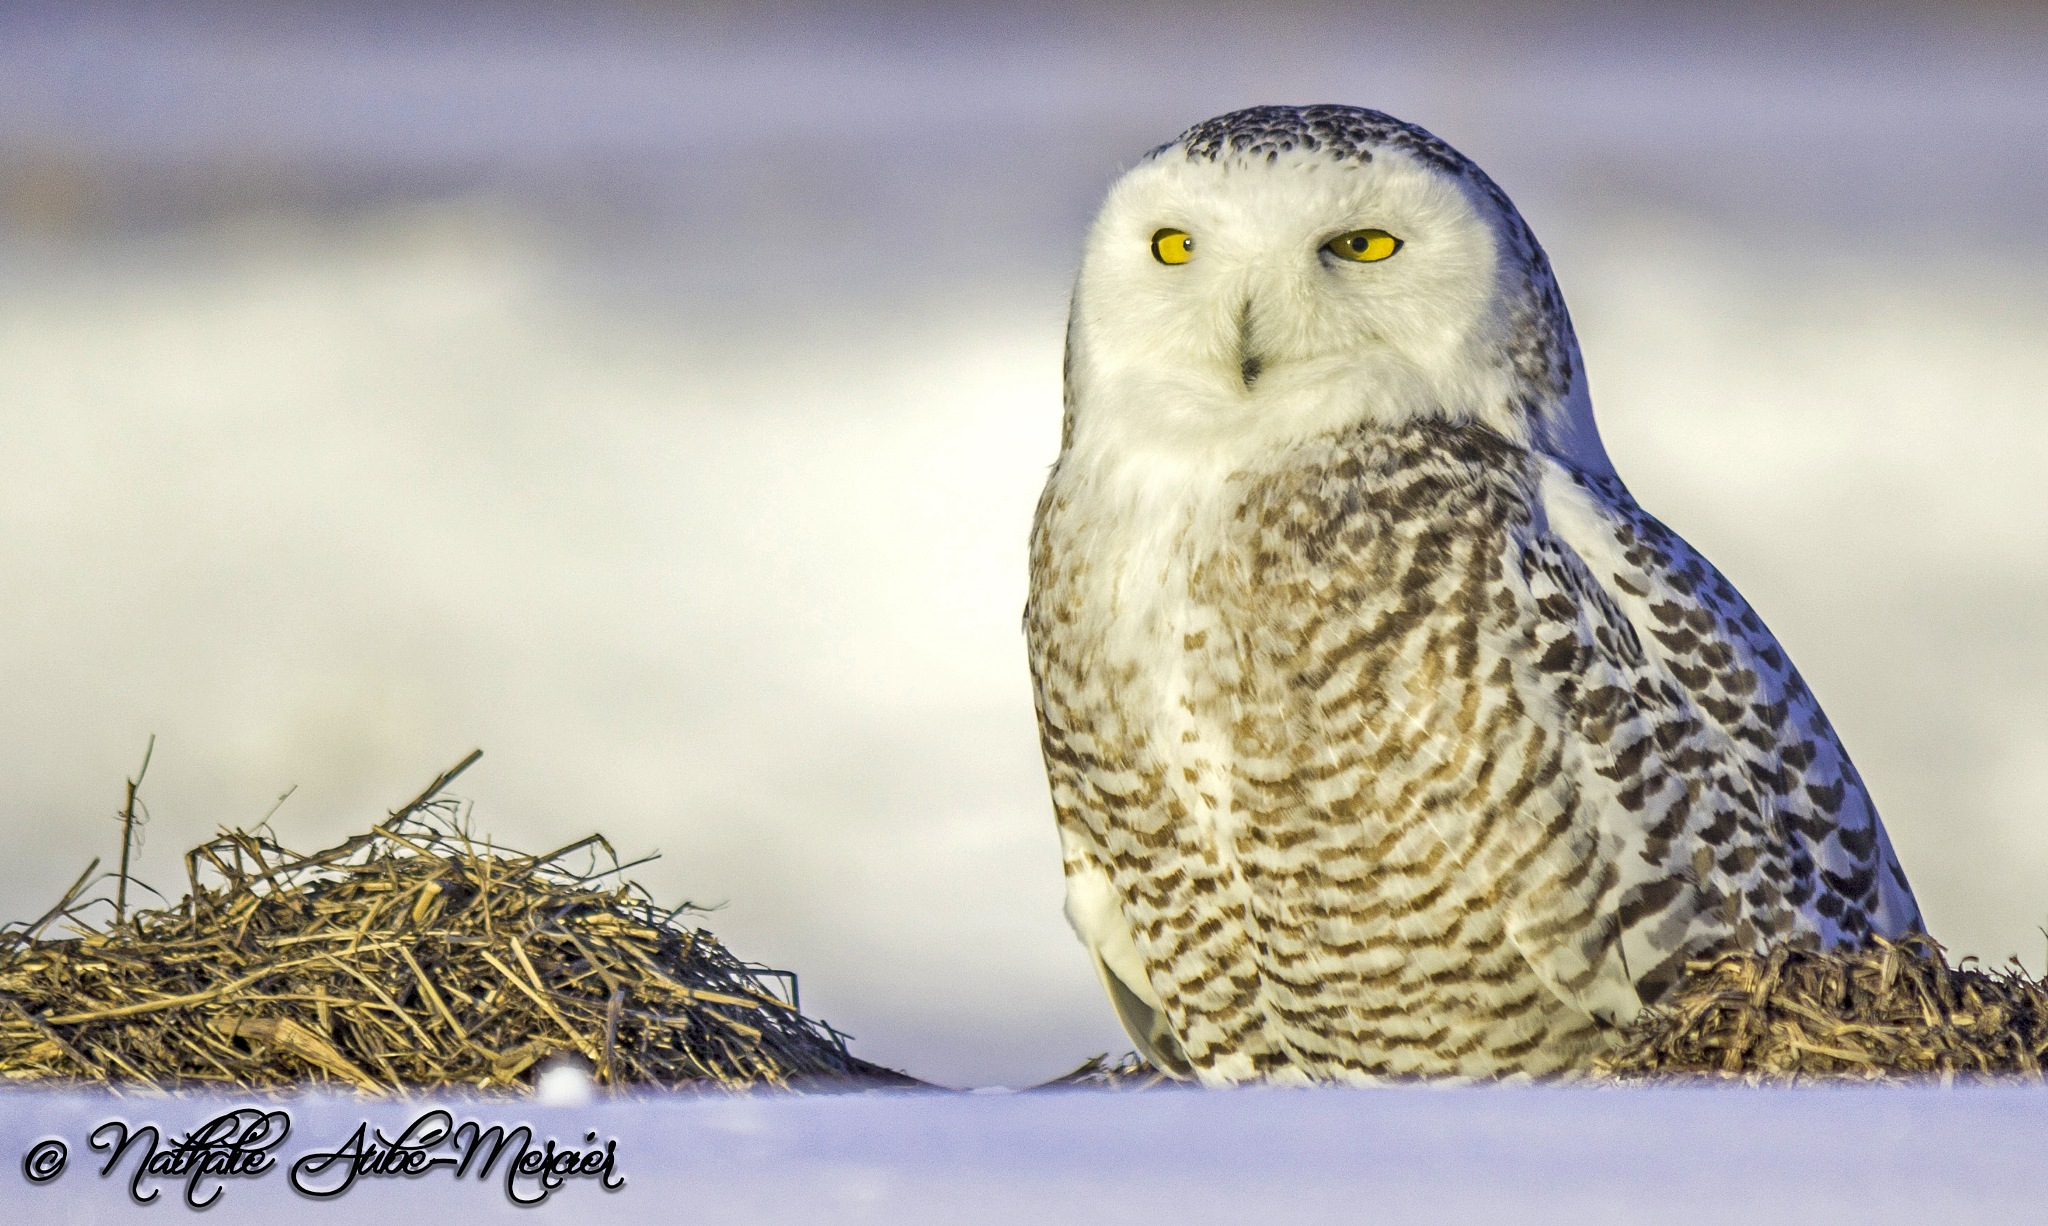 Snowy owl in snow and hay by Nathalie Mercier